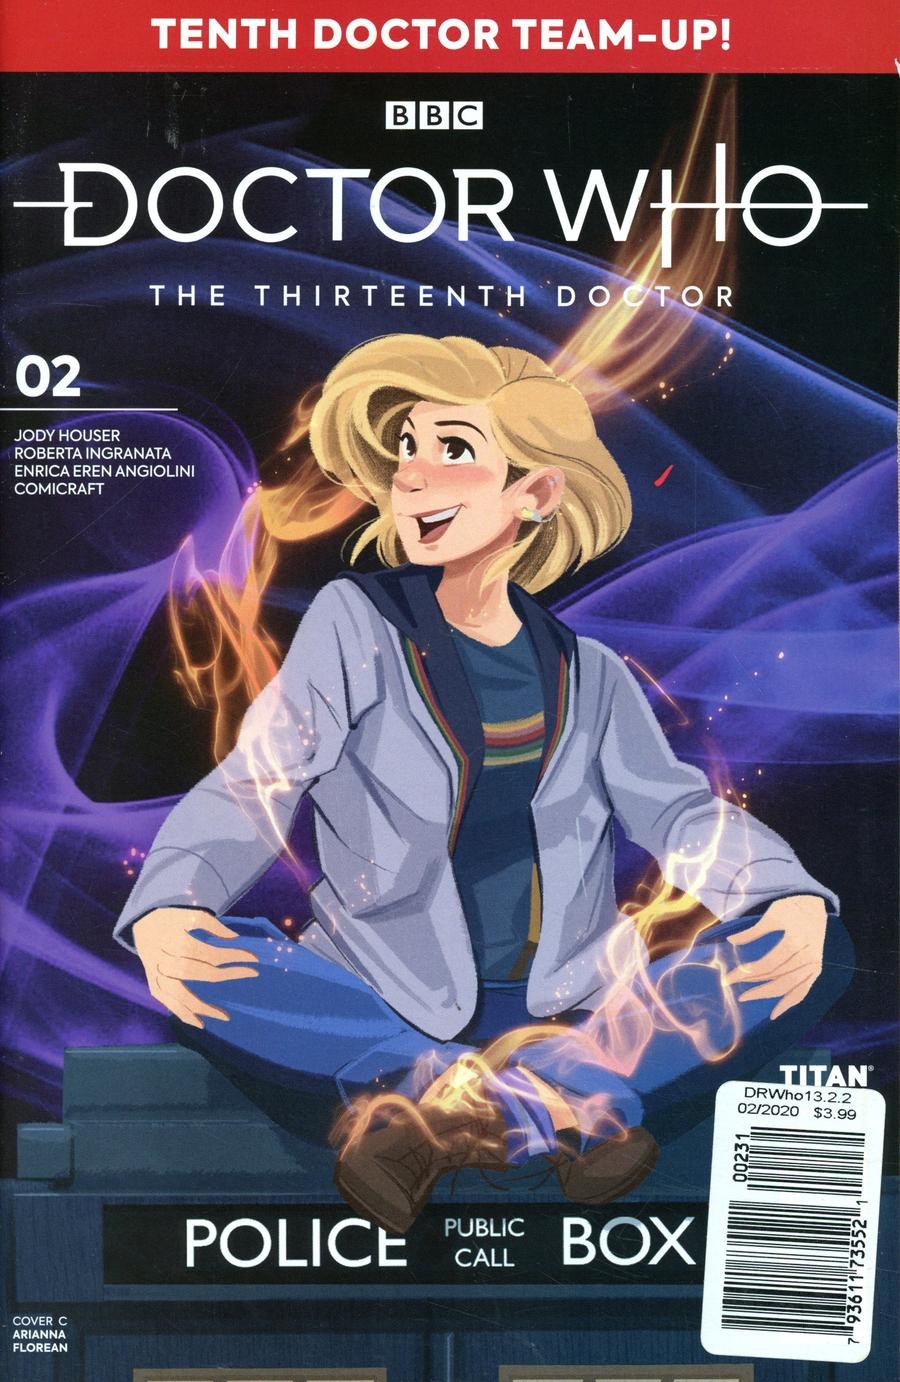 Doctor Who 13th Doctor Season 2 #2 Cover C Variant Andrew Pepoy Cover